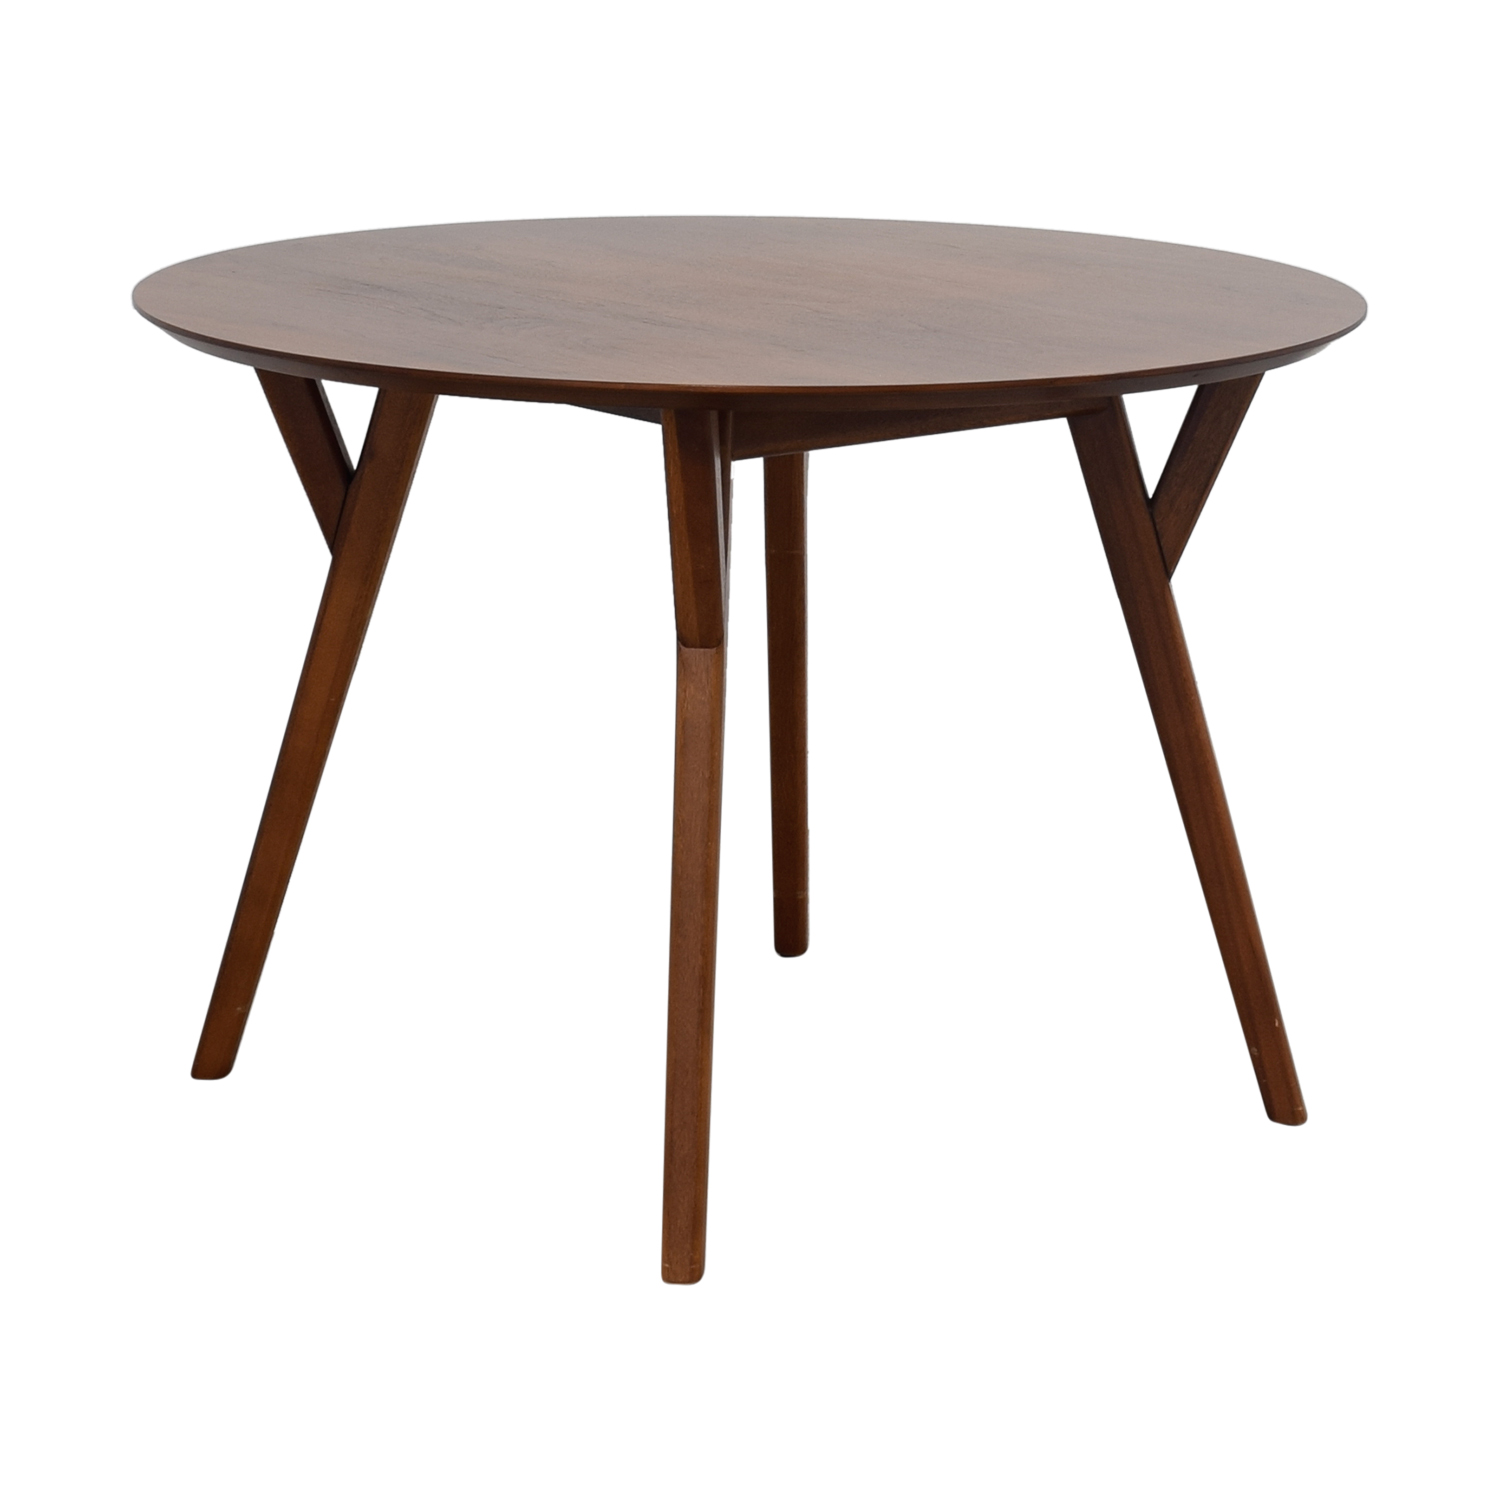 Image of: 39 Off West Elm West Elm Mid Century Walnut Round Dining Table Tables